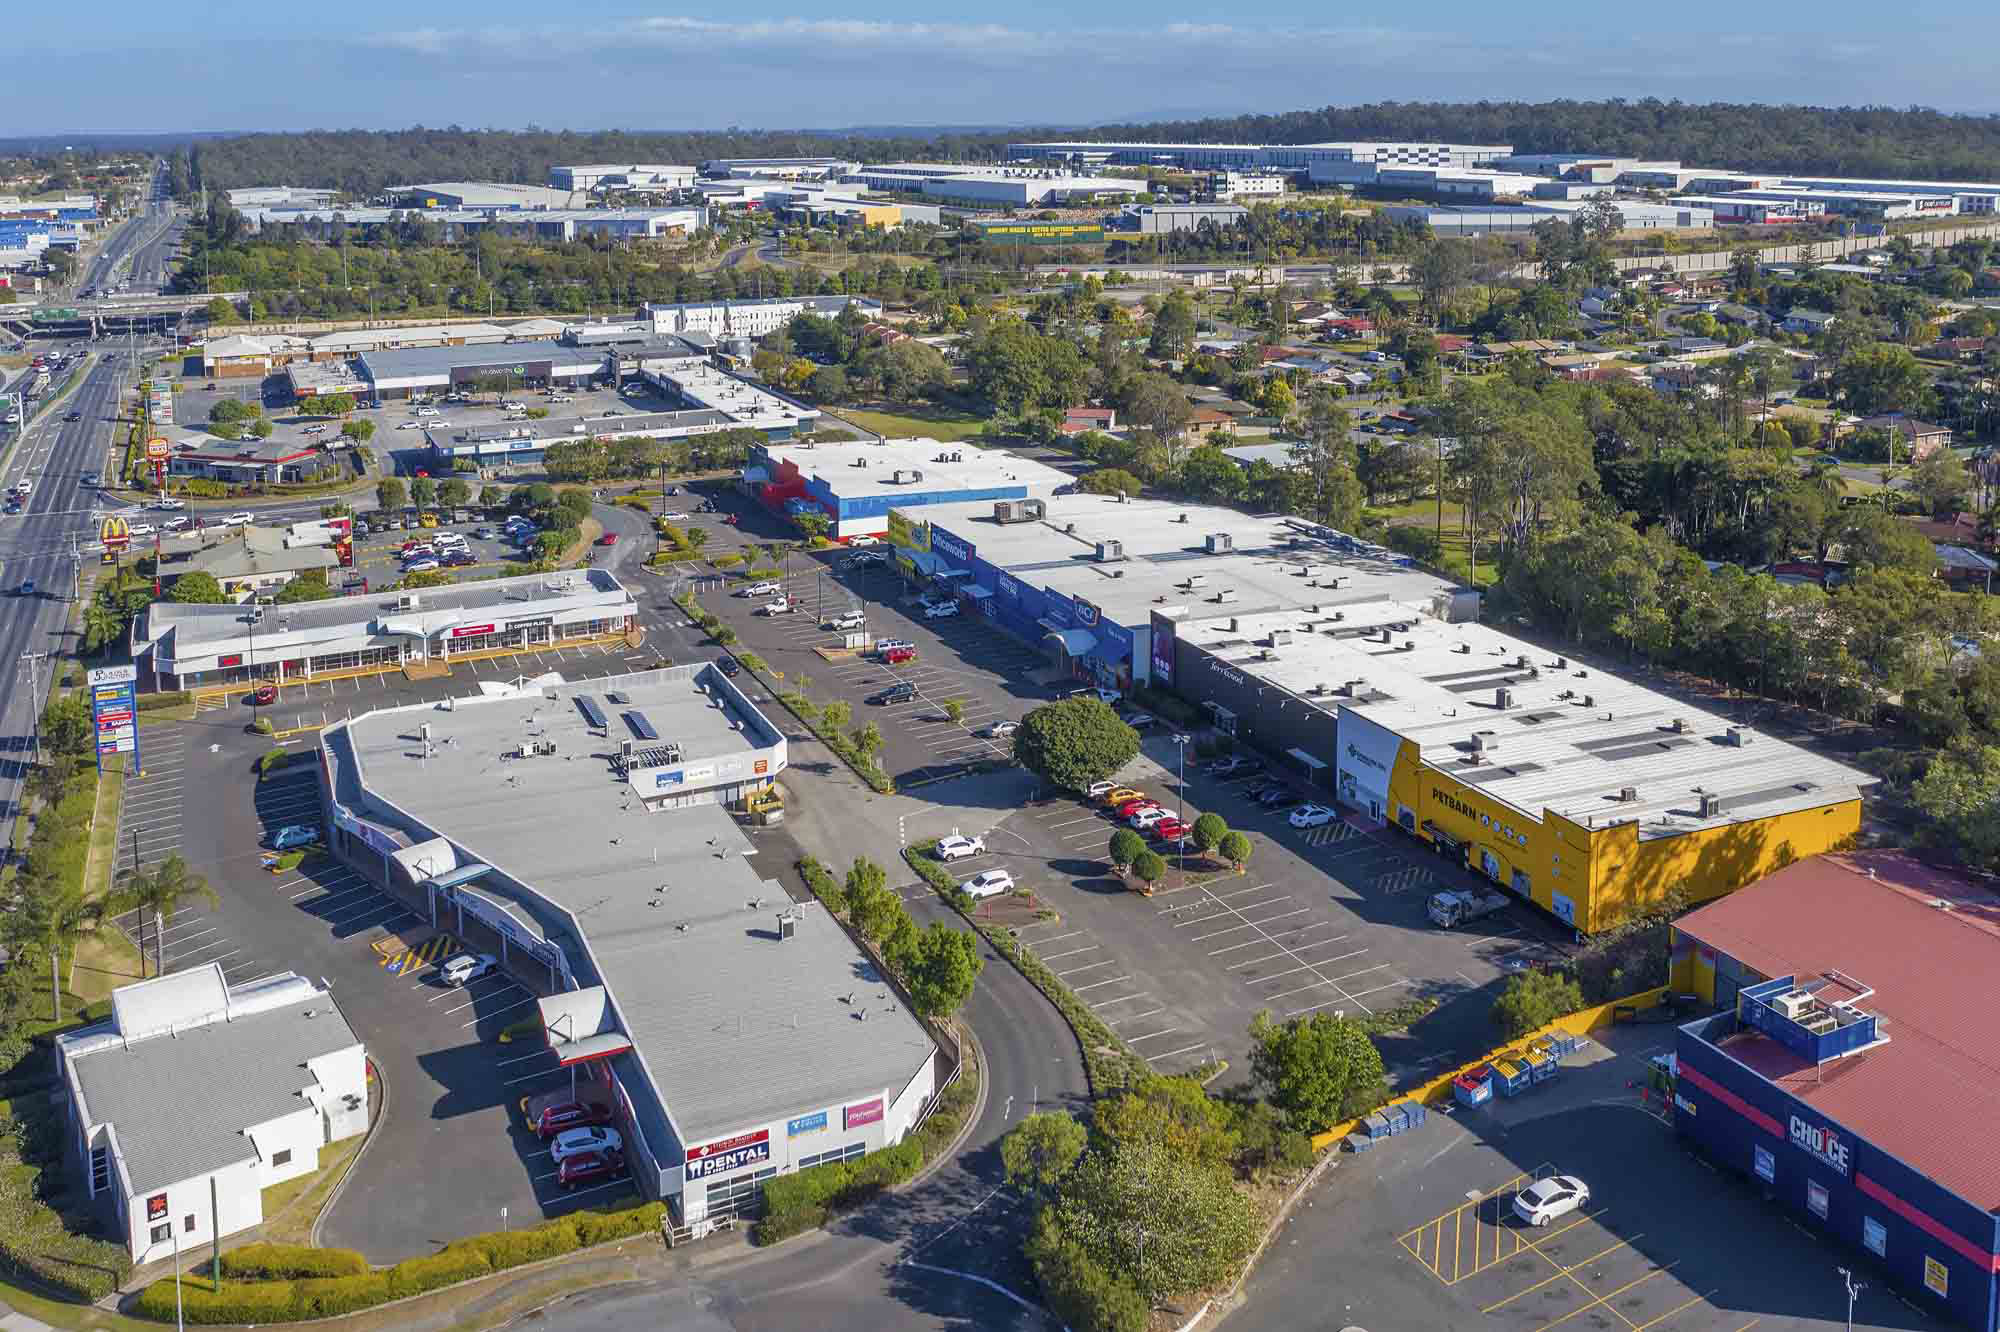 Drone photography for large format retail building at Browns Plains